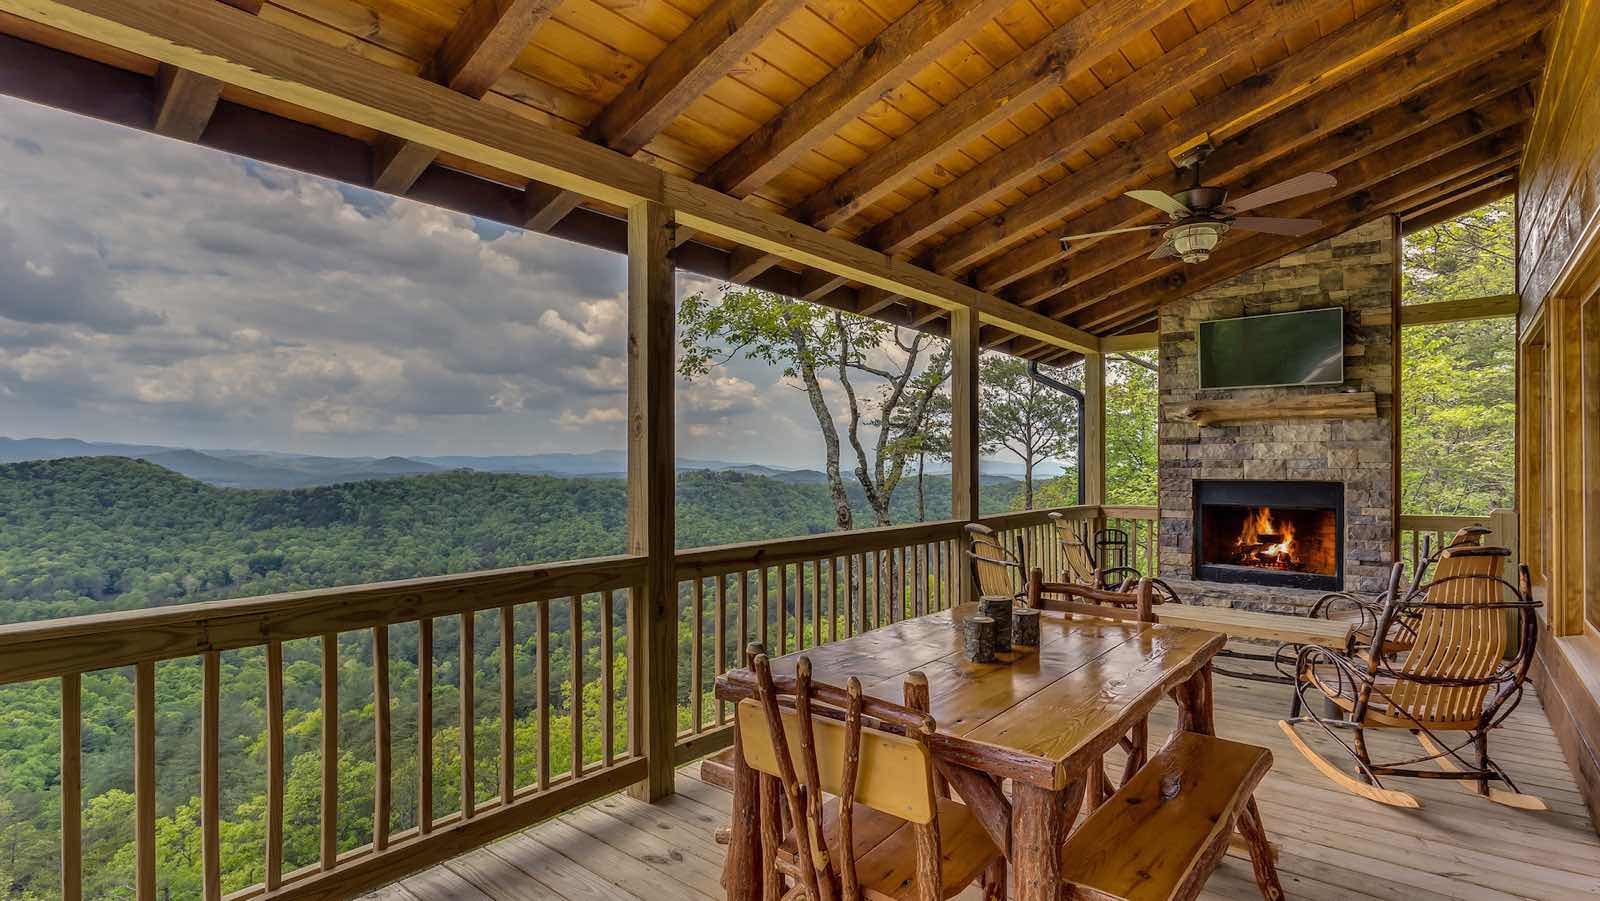 All About The View Rental Cabin Blue Ridge Ga